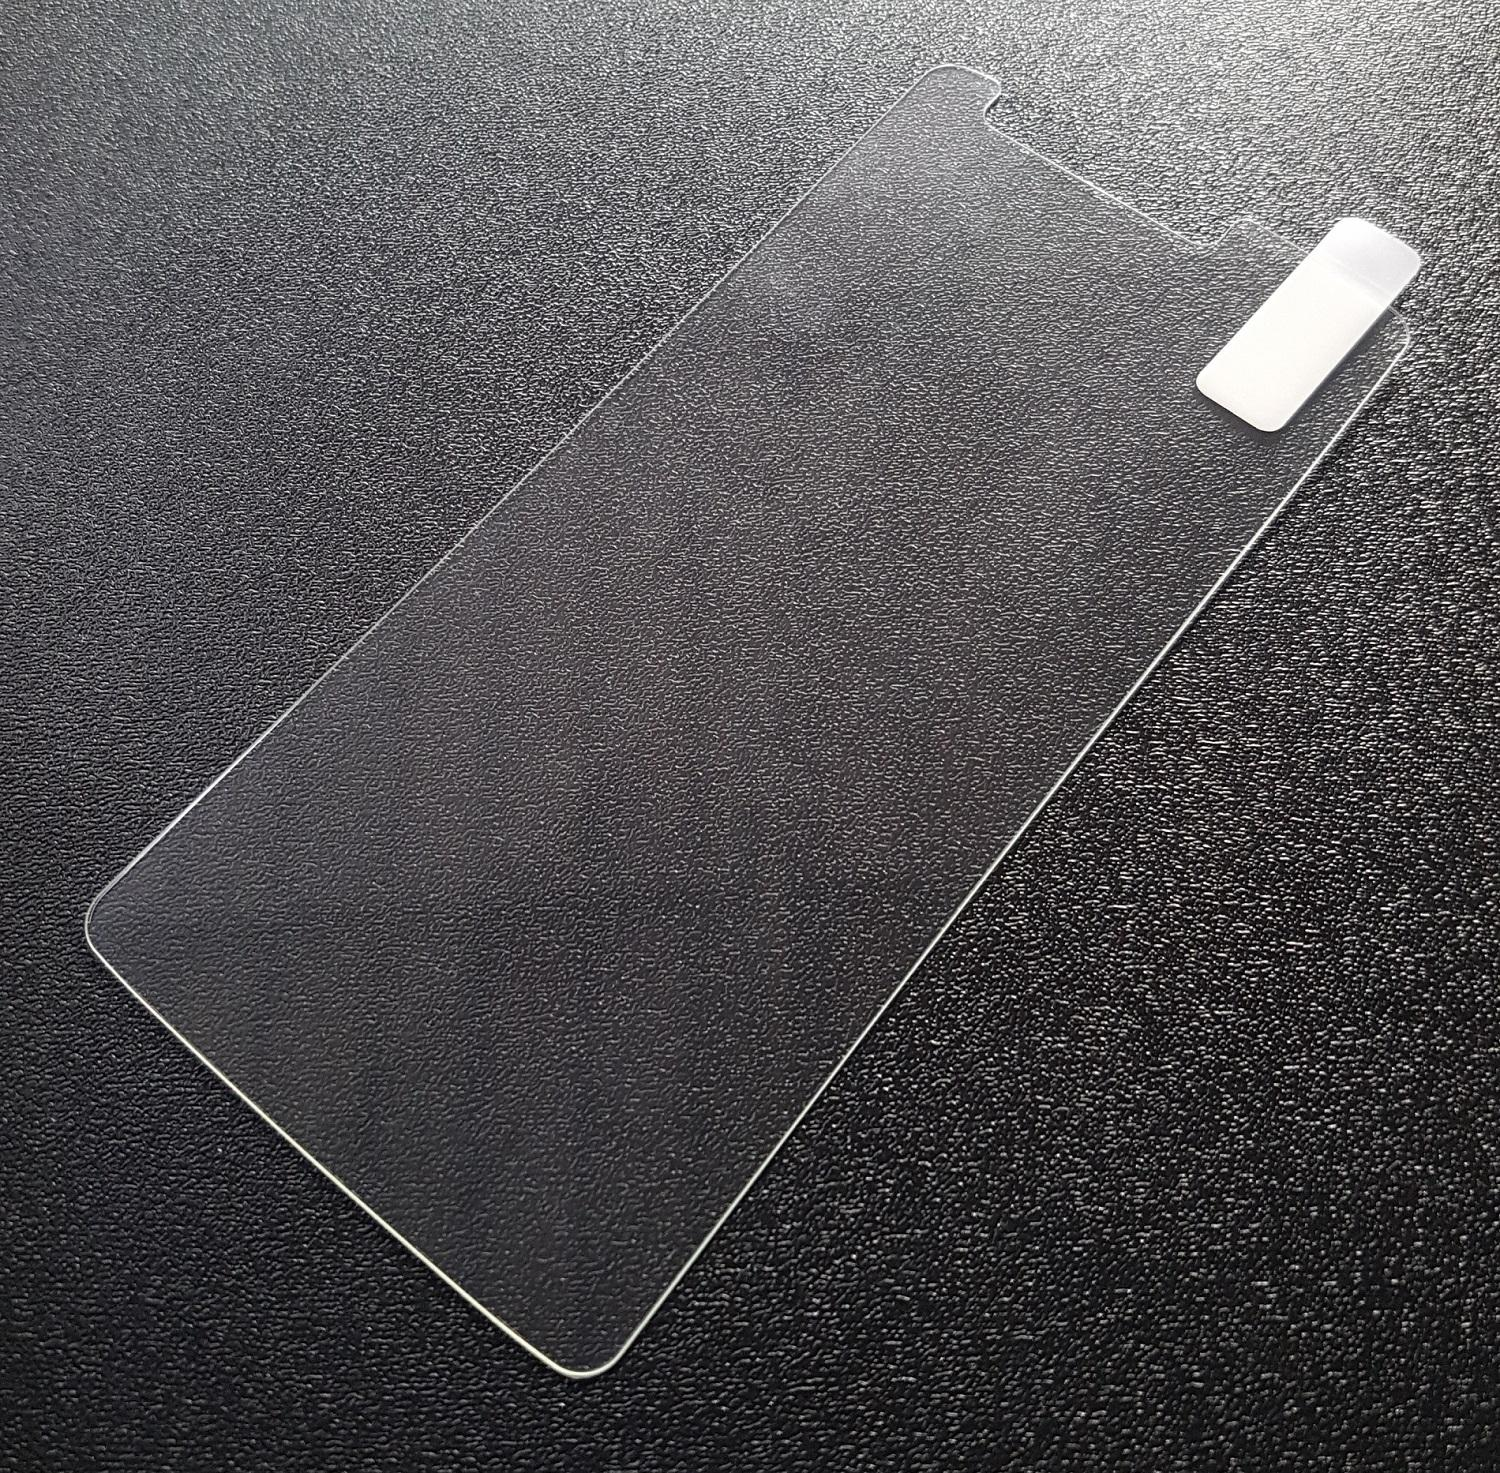 Tempered Glass Protector Anti Gores Kaca for LG K8 2017 / M200N / X240 / US215